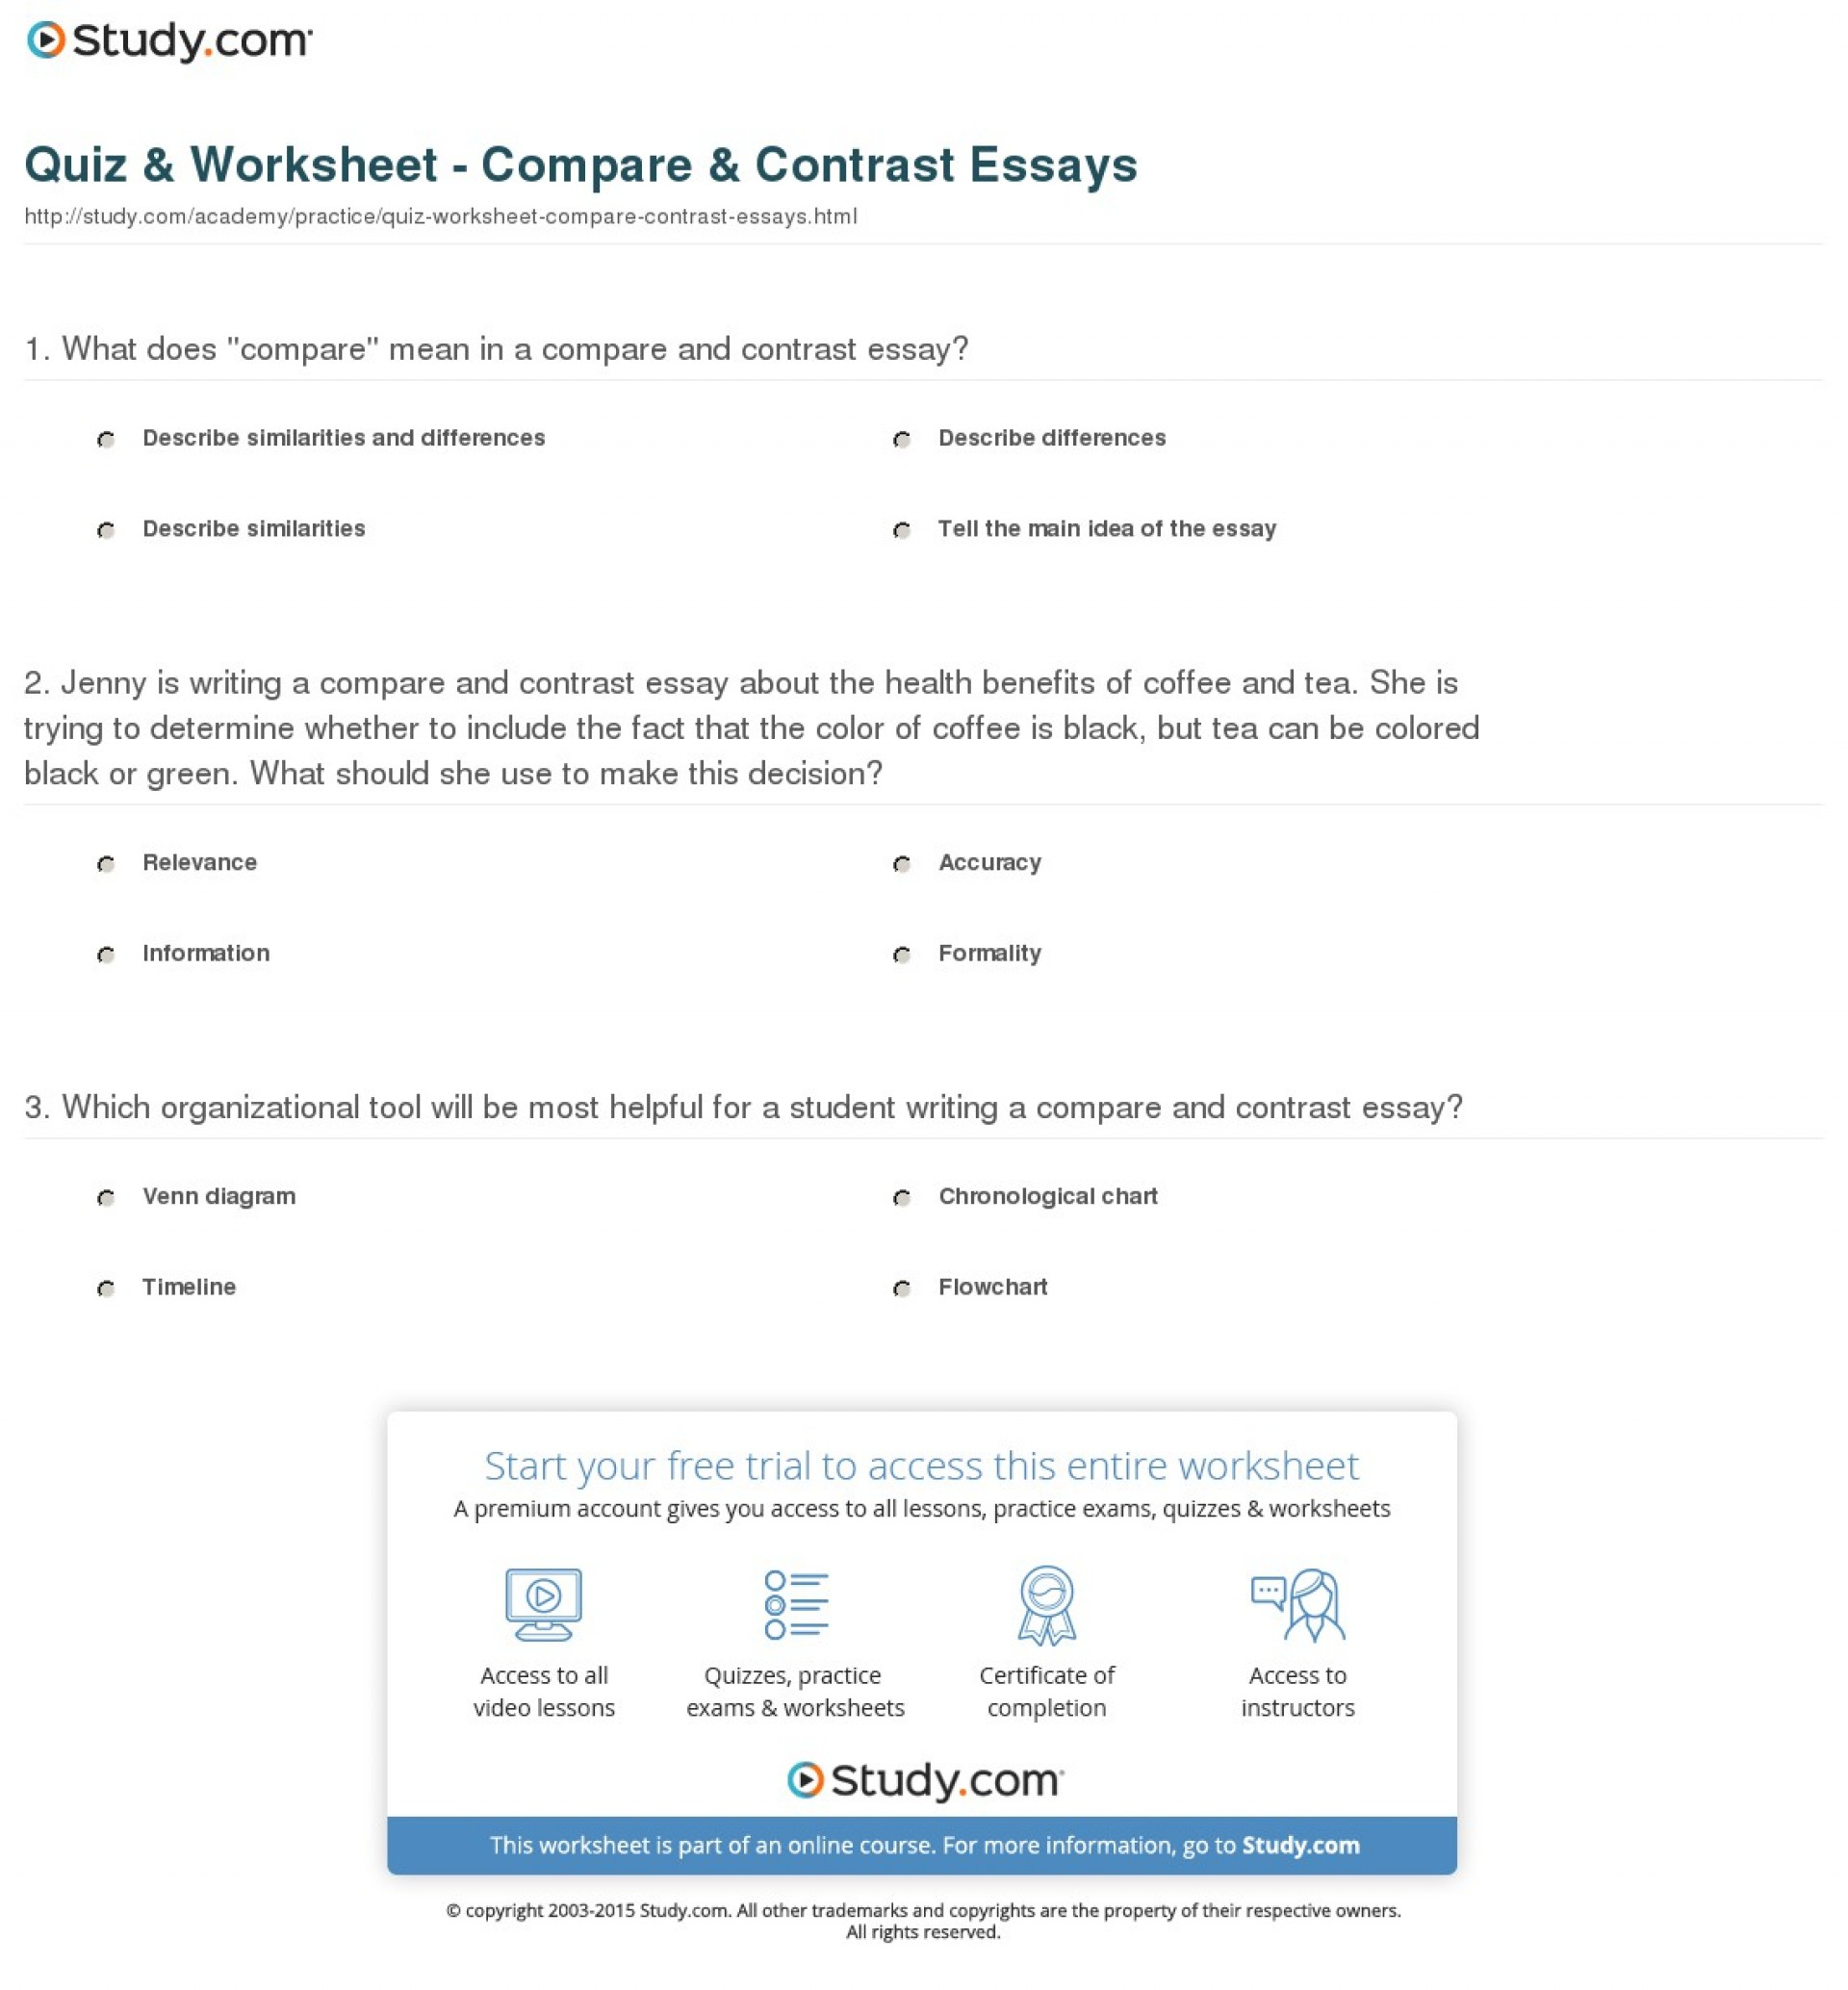 021 Quiz Worksheet Compare Contrast Essays Essay Example Sensational And Sample Introduction For Comparison Point-by-point Of An Paragraph 1920